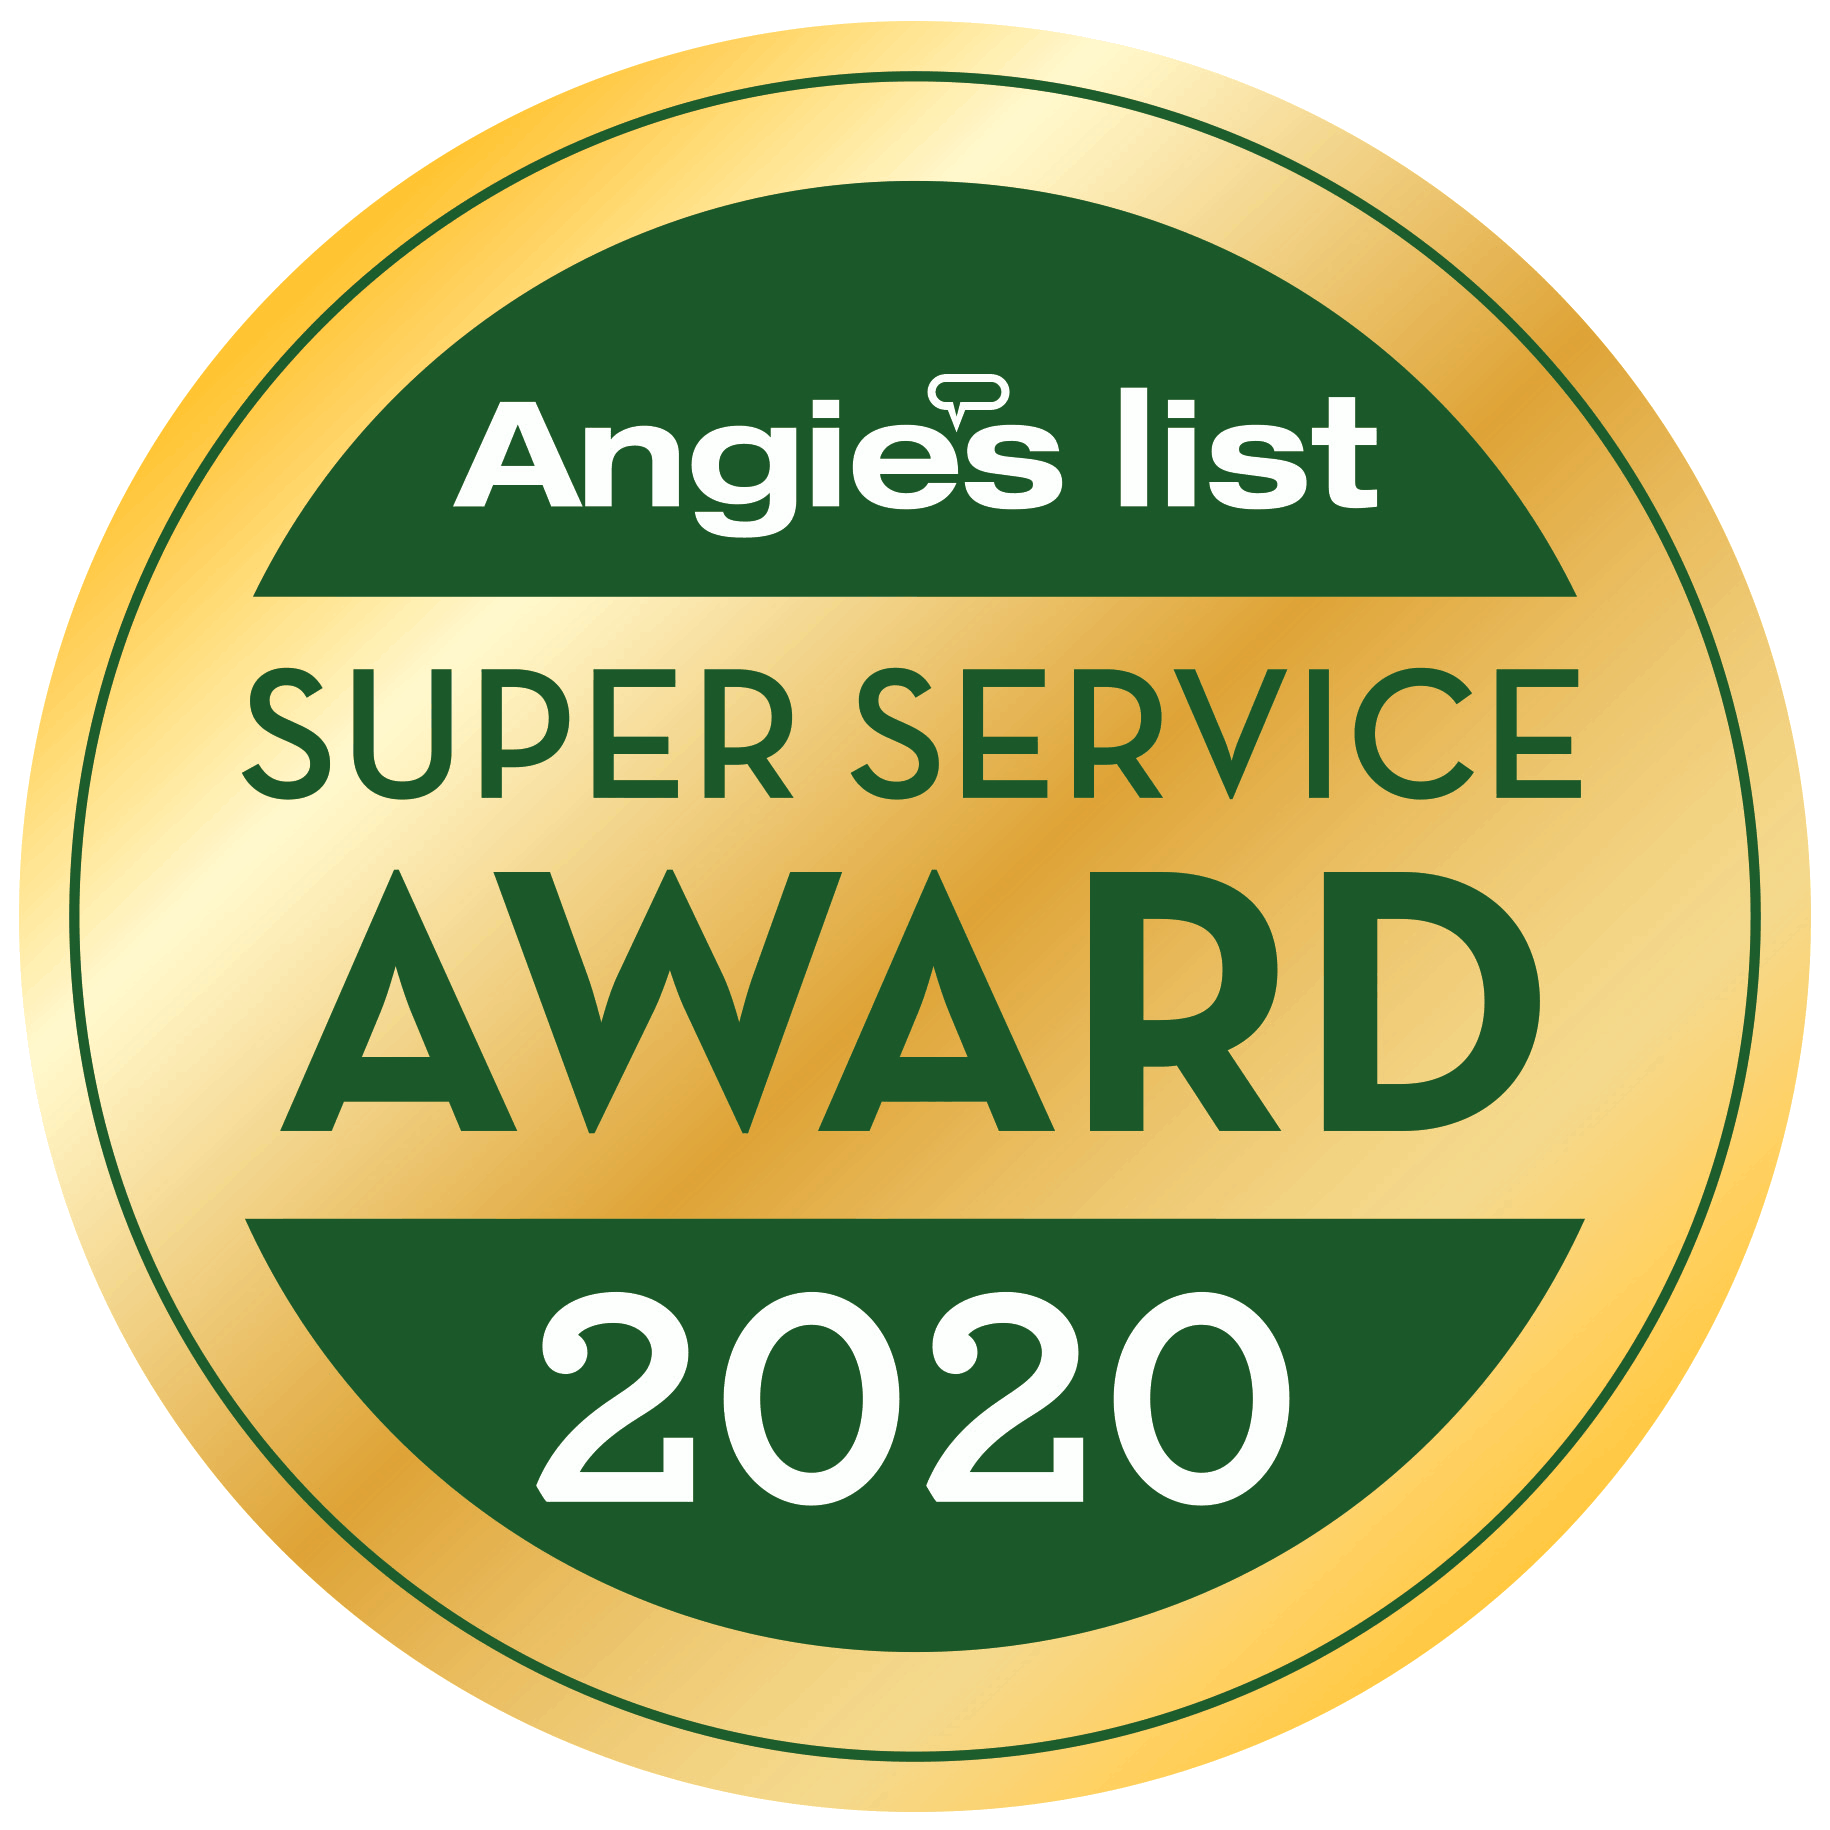 Angie's List 2020 Super Service Award Badge